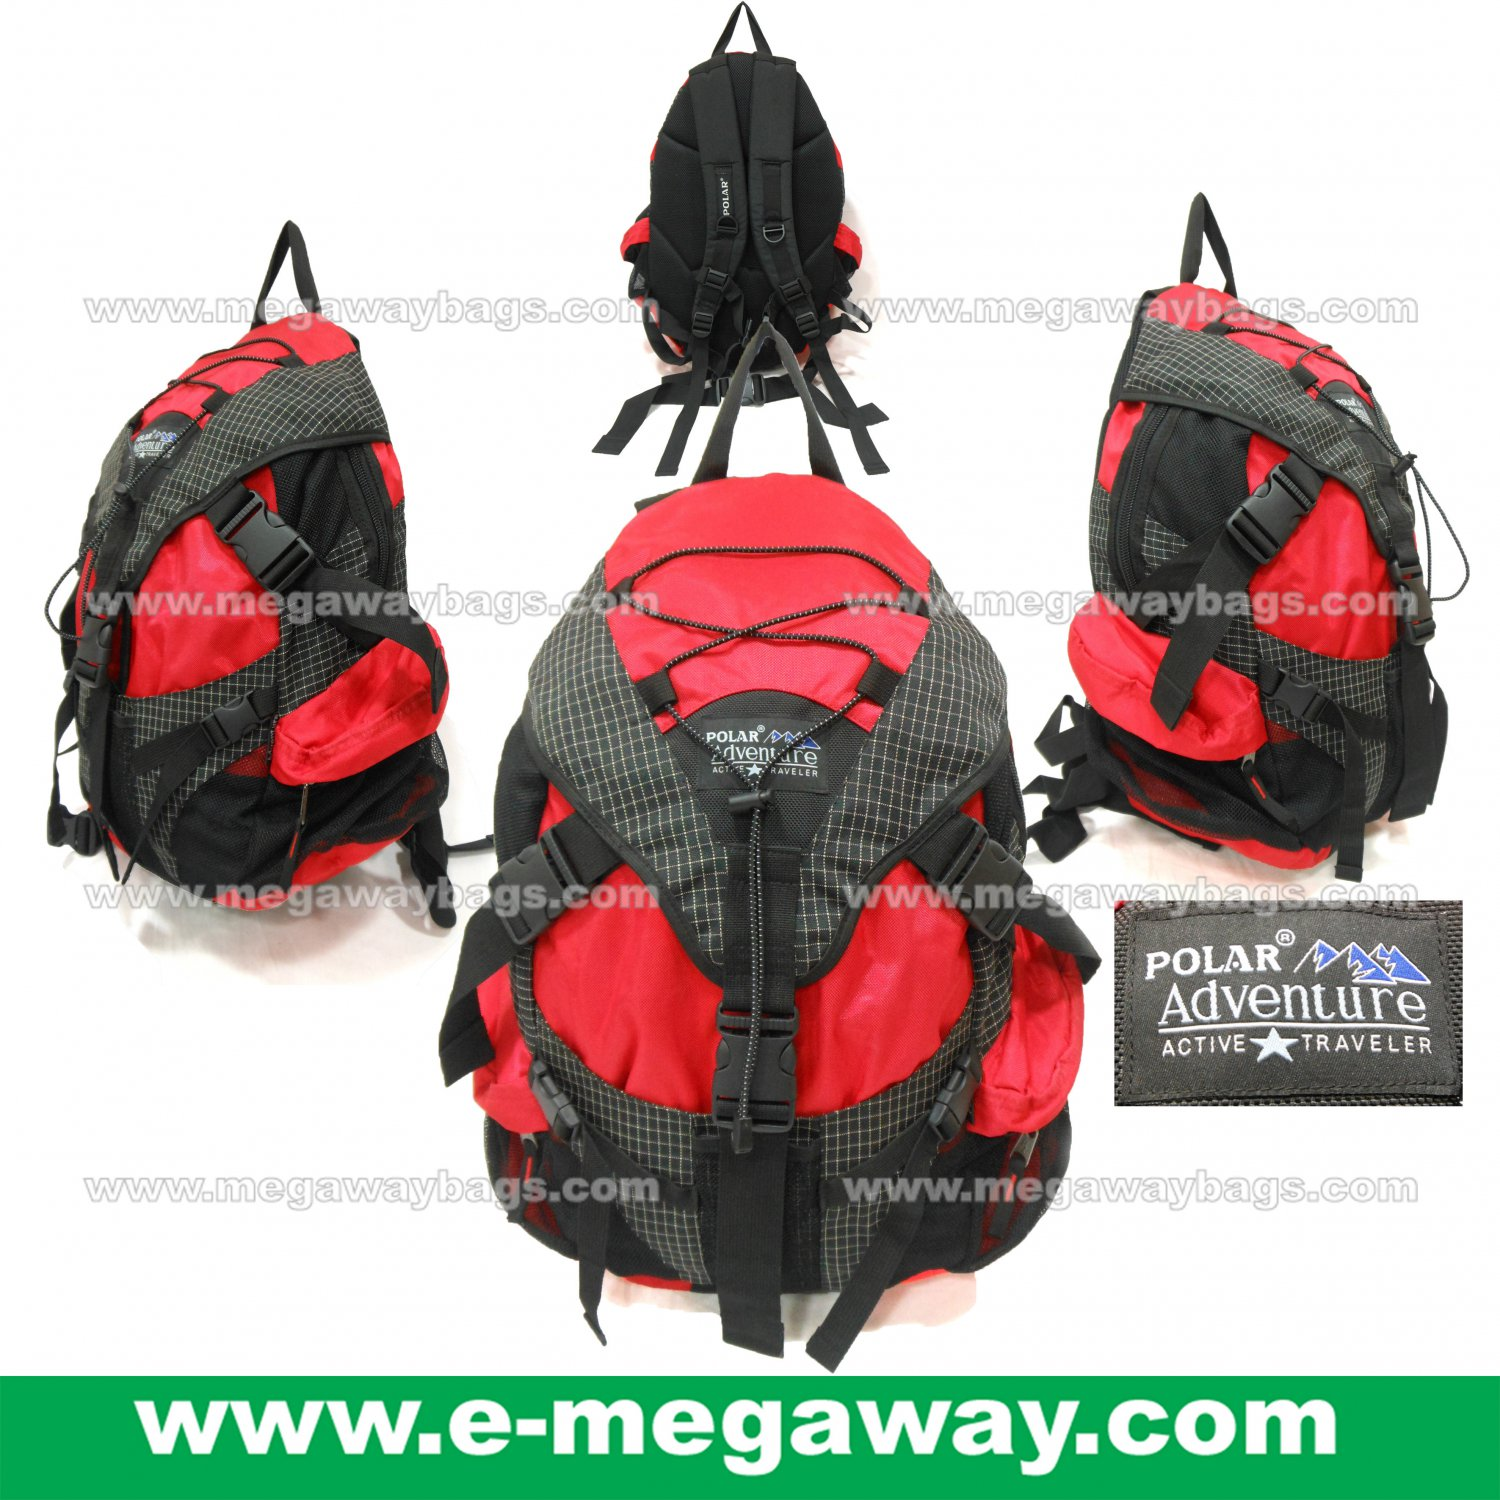 Polar Adventure Surf Cycle Snowboard Skate Ski Backpack Day Pack MegawayBags #CC-0977